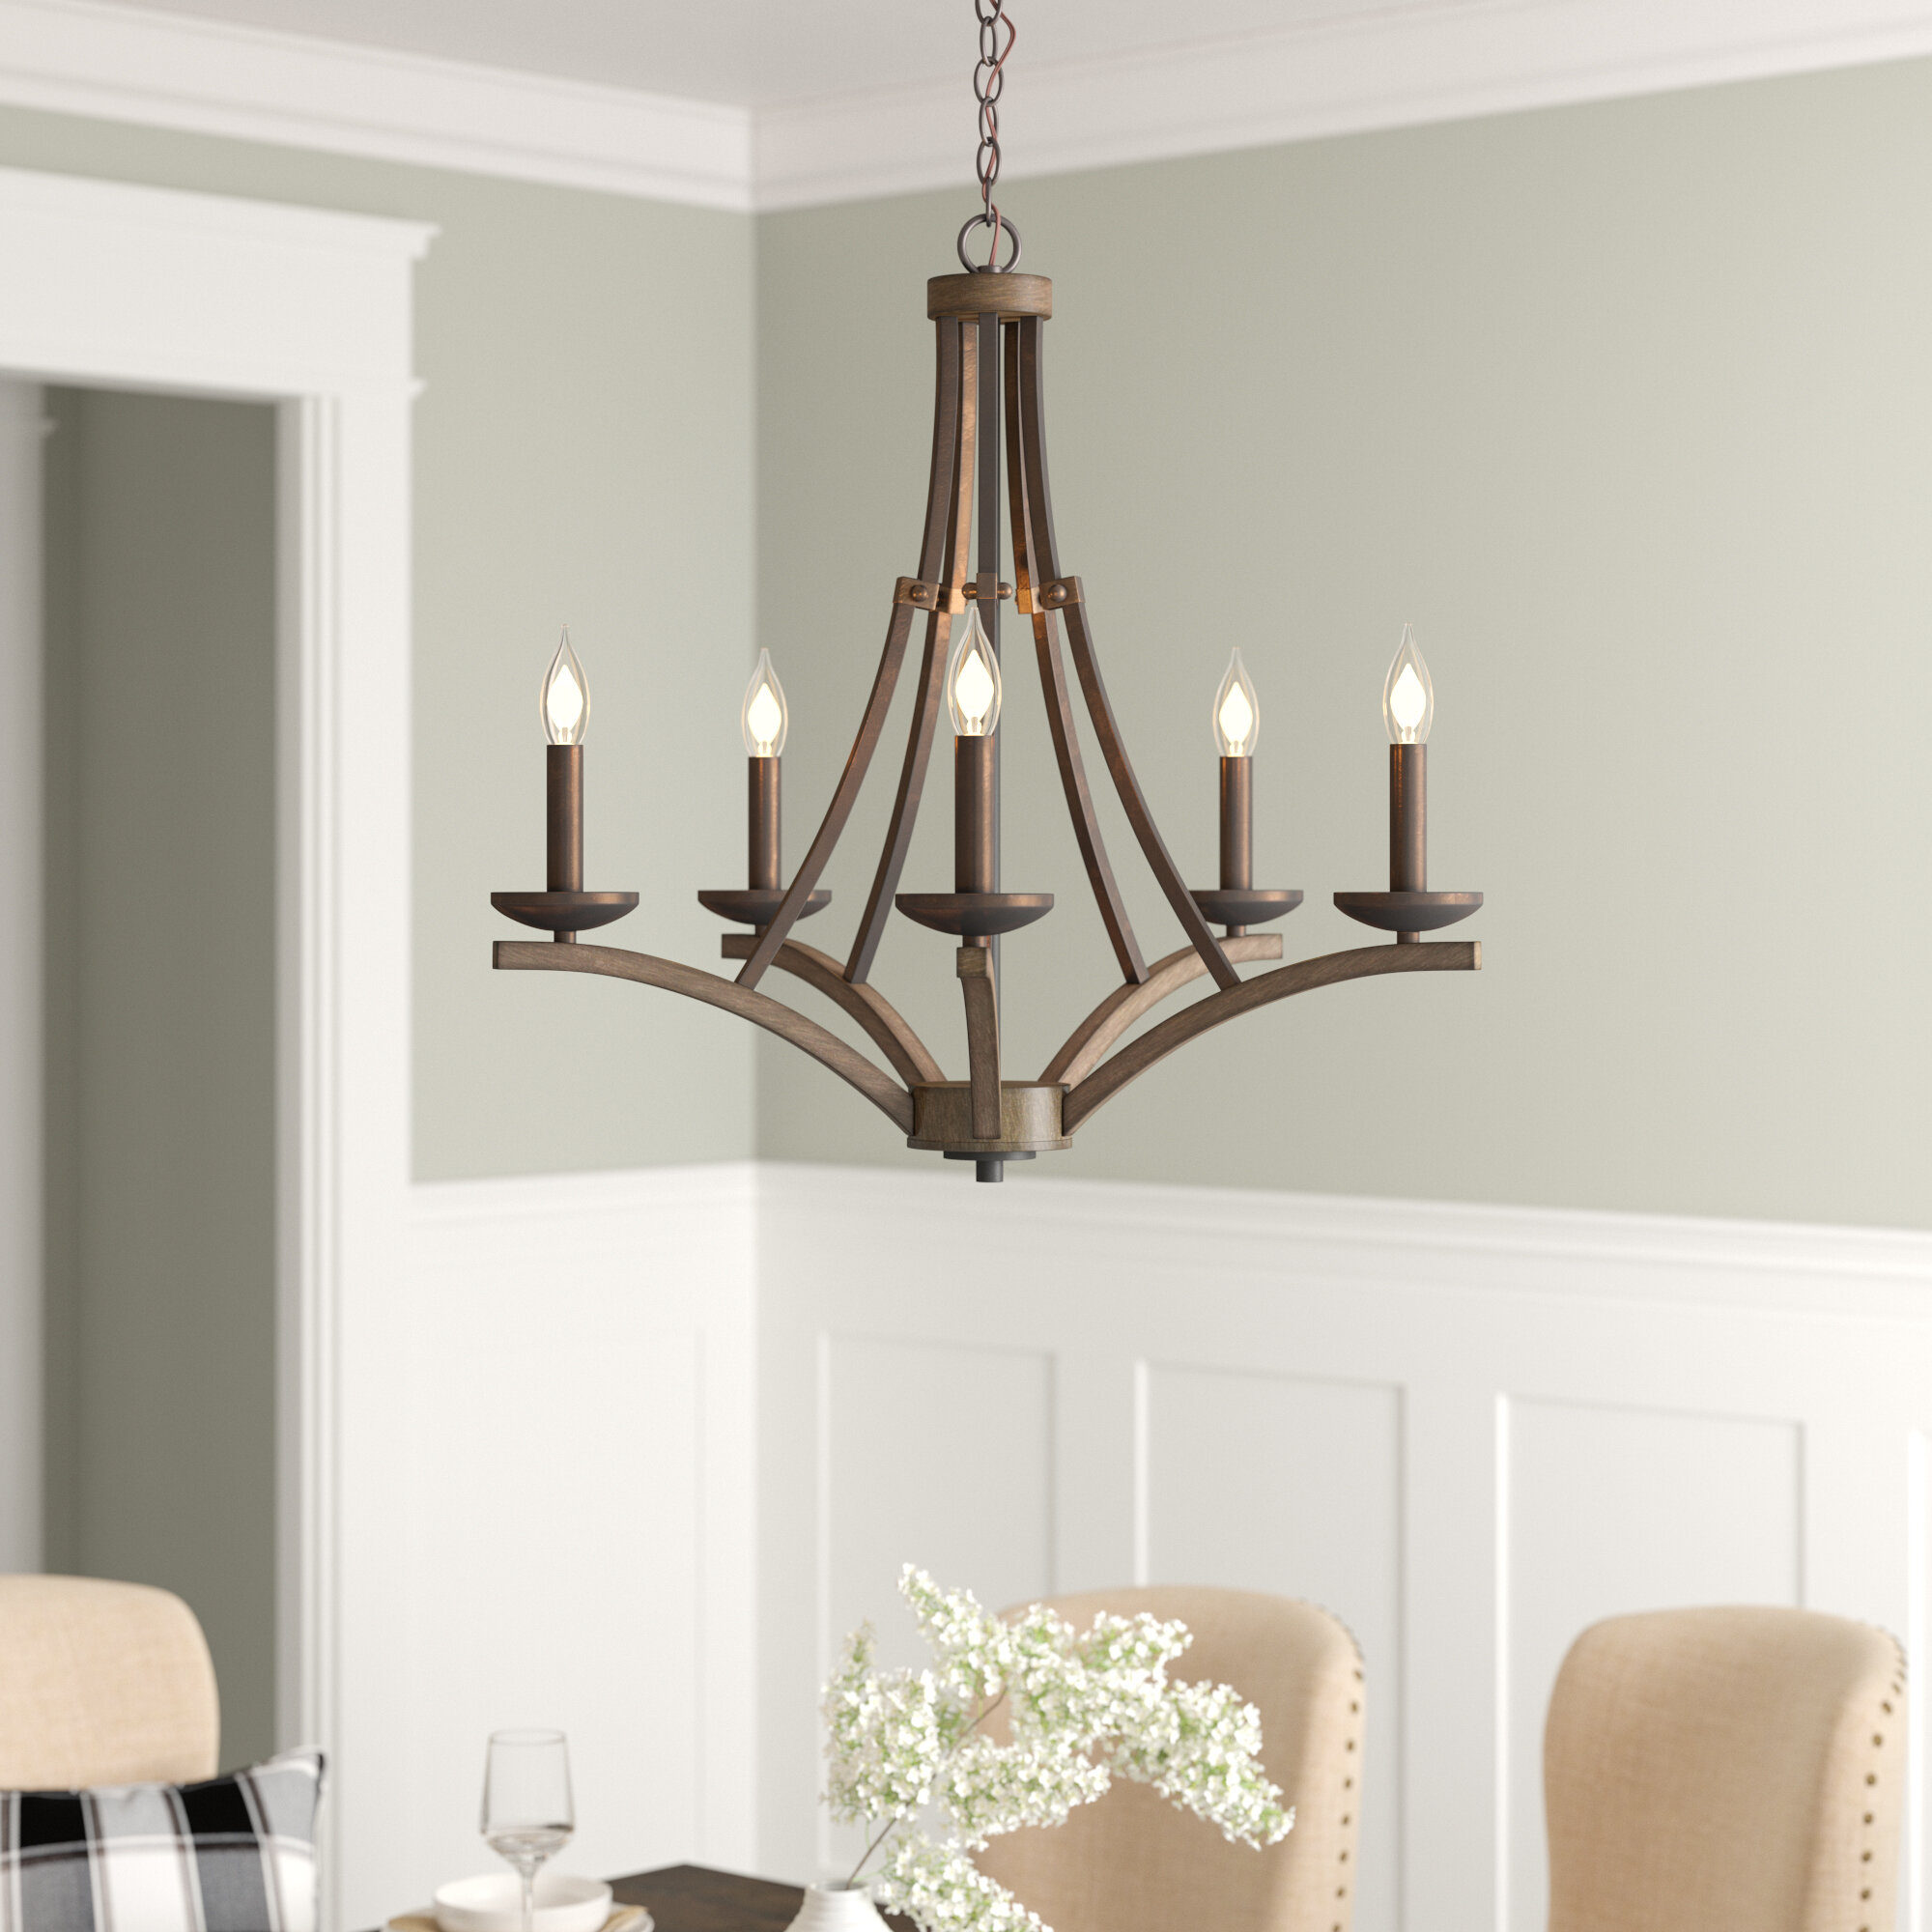 Wireman 5 Light Candle Style Chandelier With Berger 5 Light Candle Style Chandeliers (View 11 of 30)